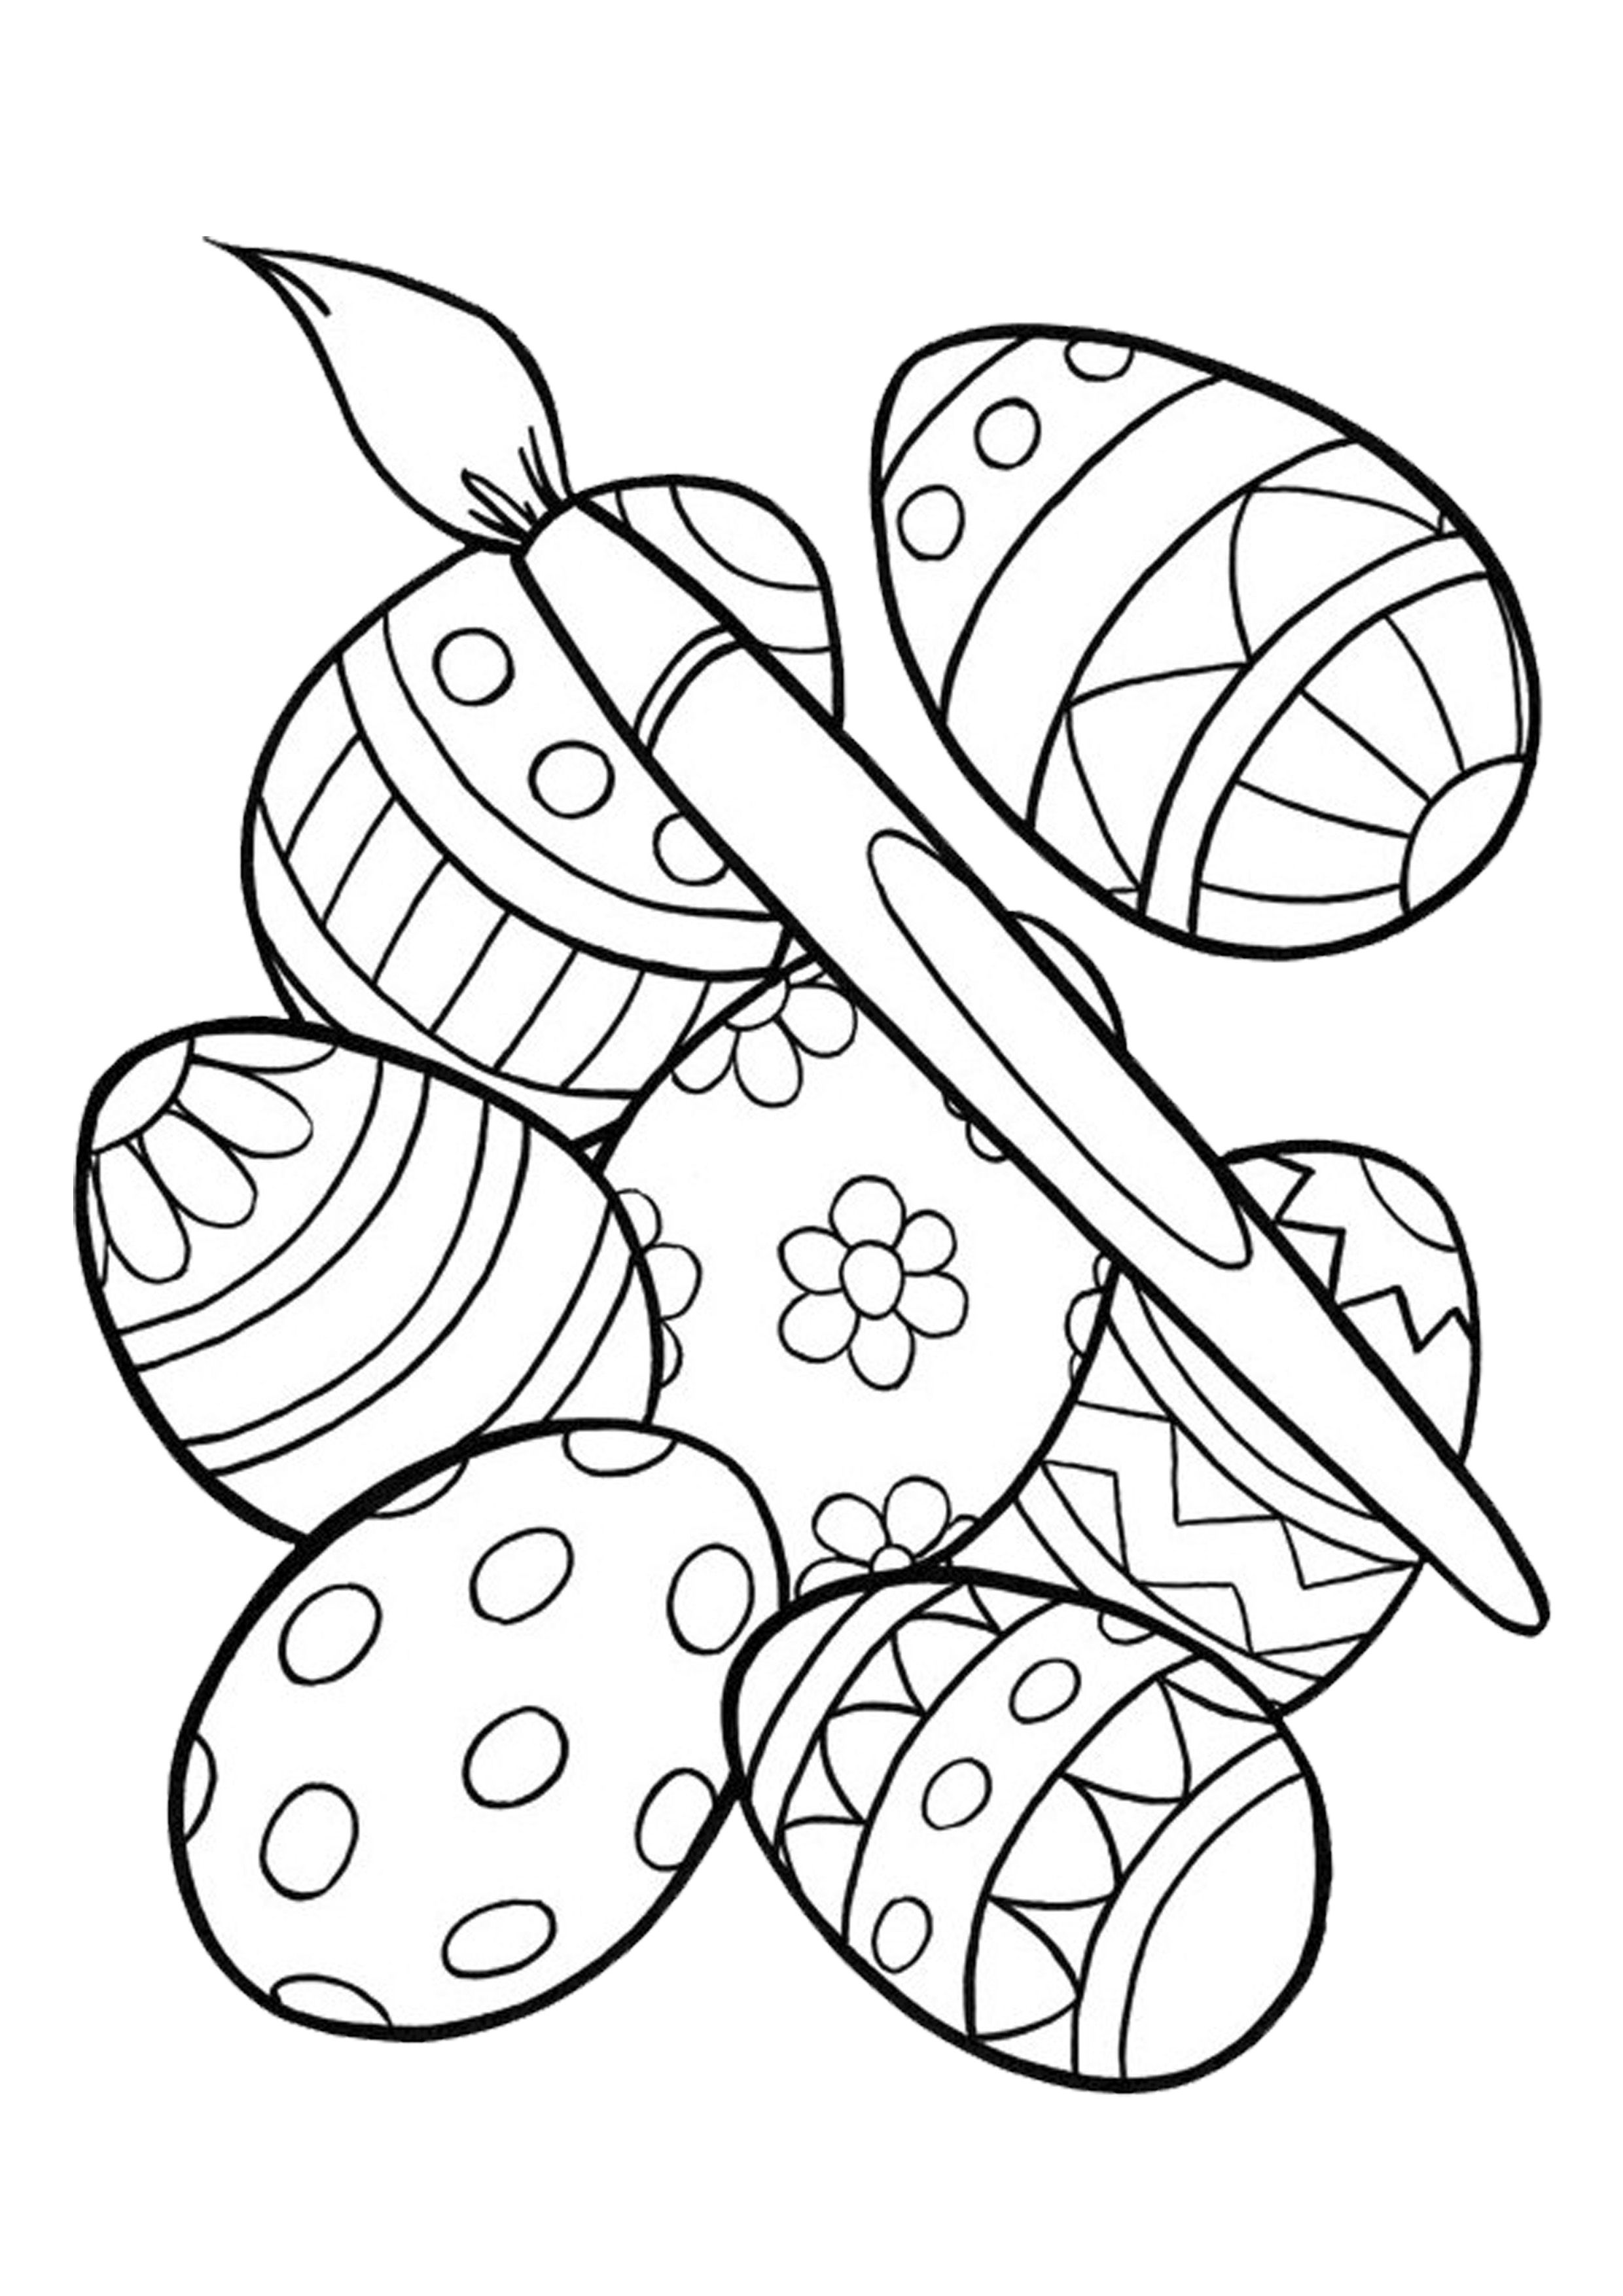 color pages for easter easter free easter coloring pages easter egg coloring easter for color pages